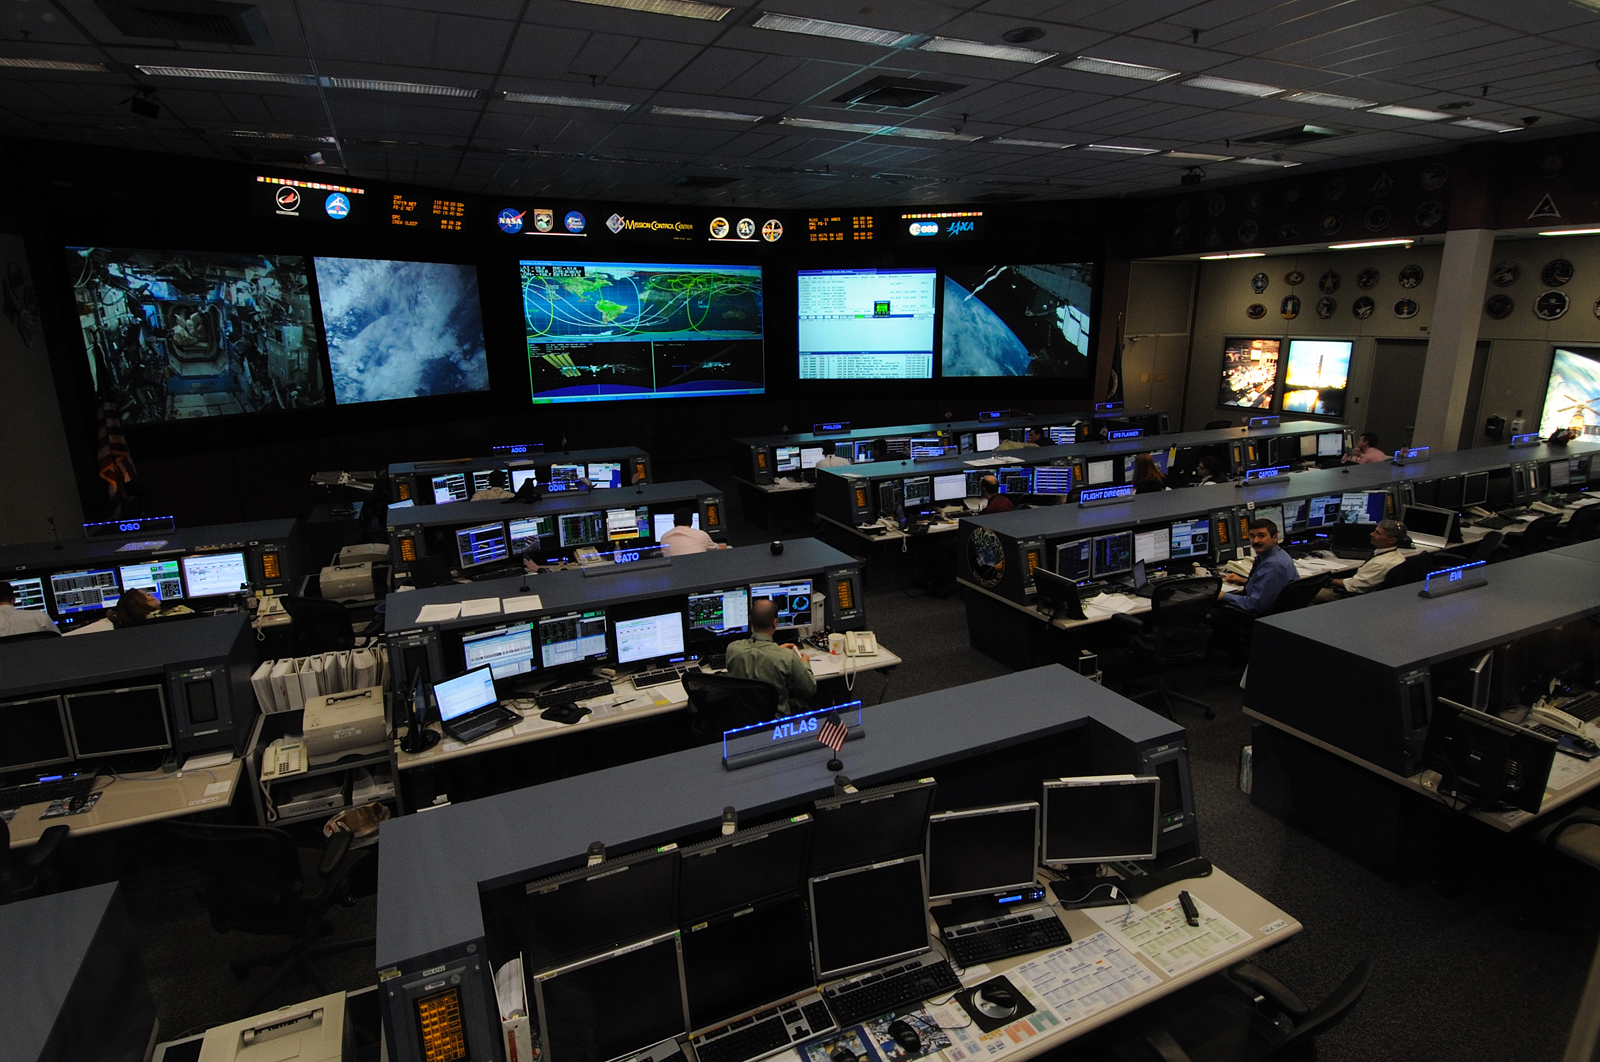 NASA's International Space Station Mission Control Center in Houston, Texas